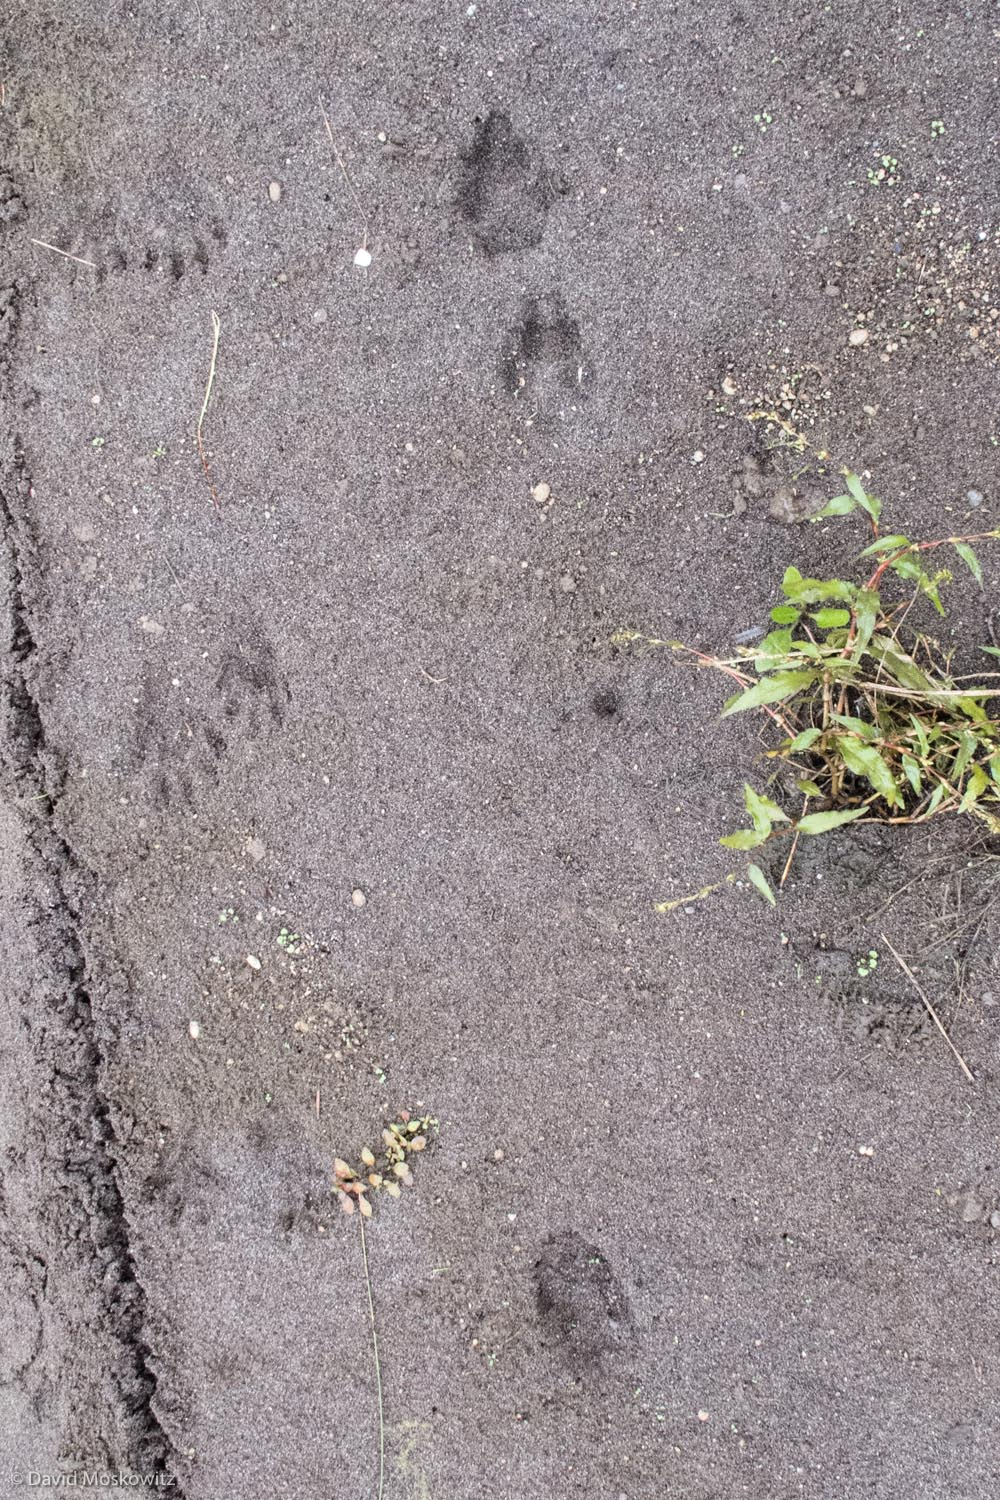 The unusual track pattern of a coyote missing one of its front feet. Note the circular imprint of the leg without the foot just to the left of a plant. The tracks of a raccoon can be found to the left of the coyote.